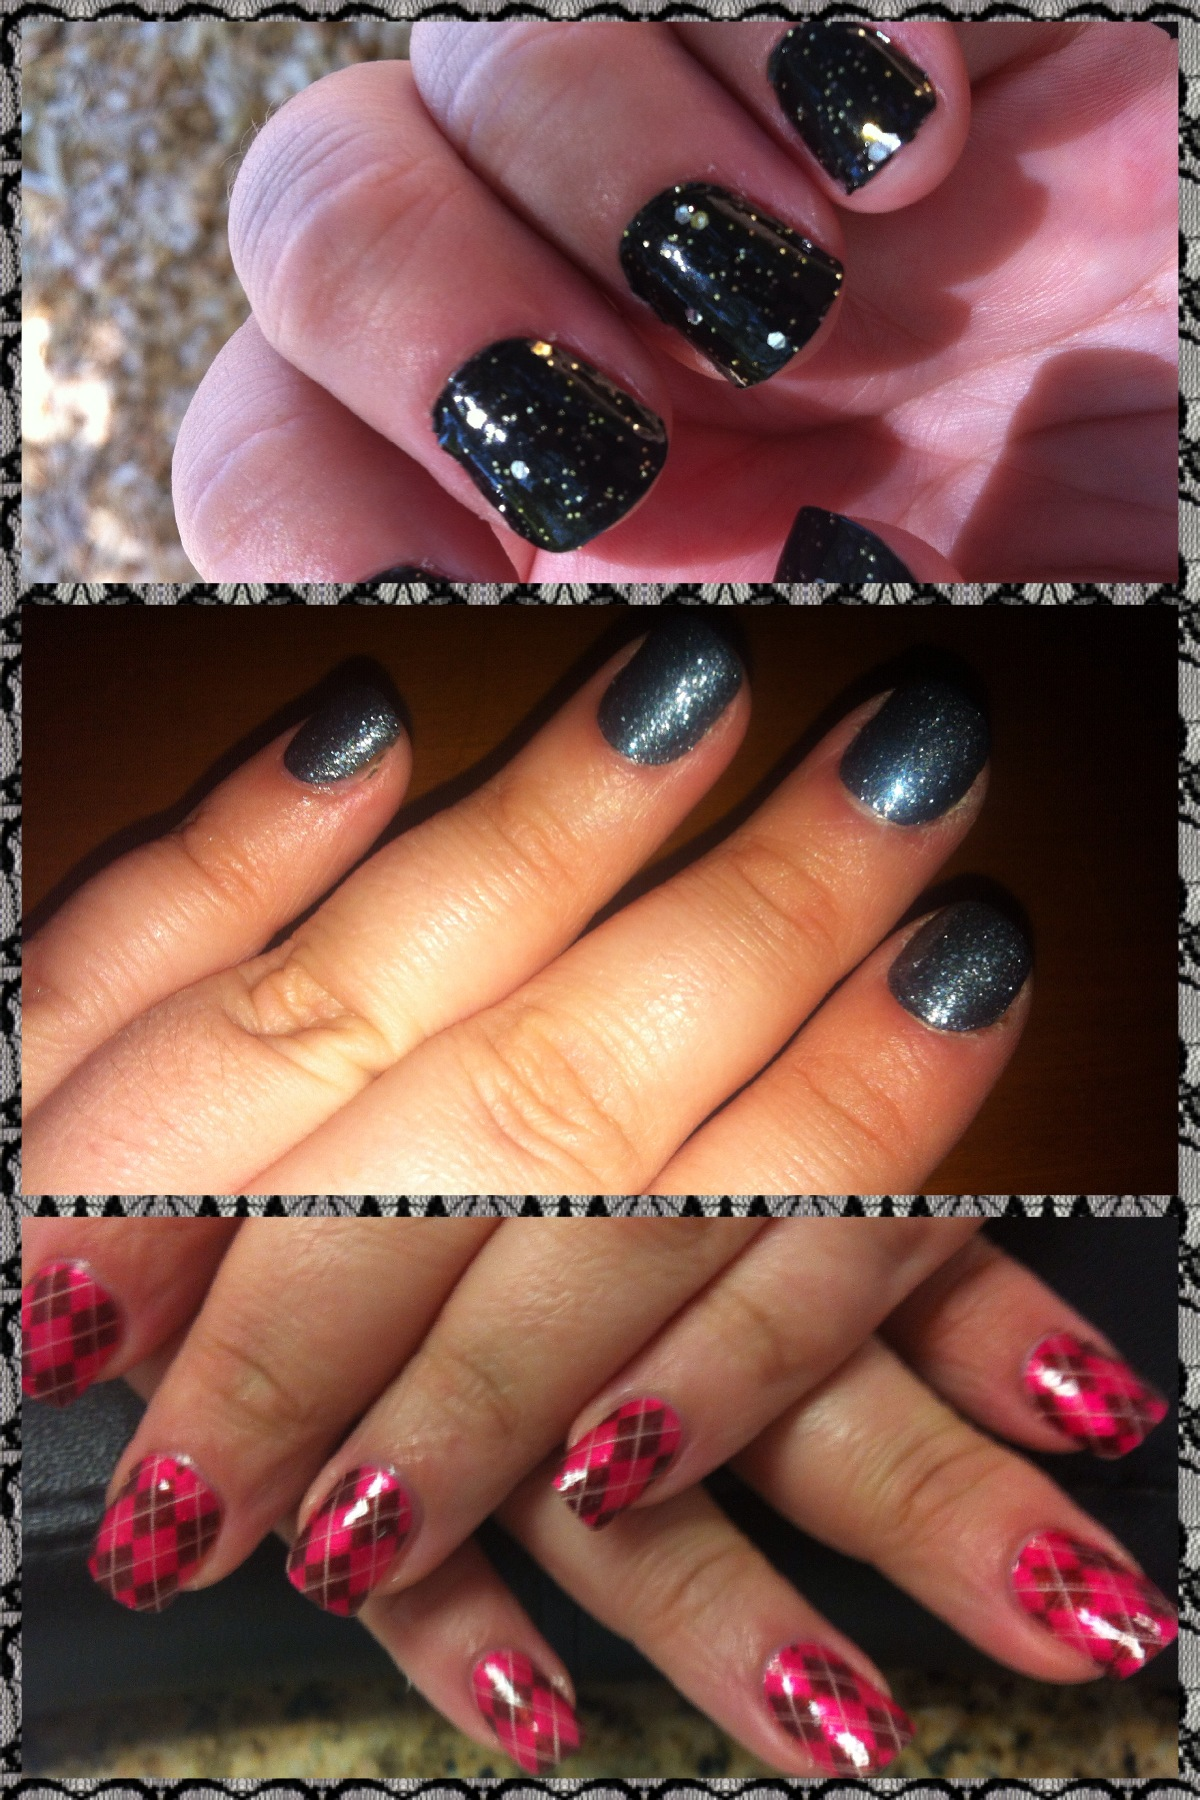 Various looks created with Sally Hansen Real Polish Nail Strips (photos: Michelle Turner)